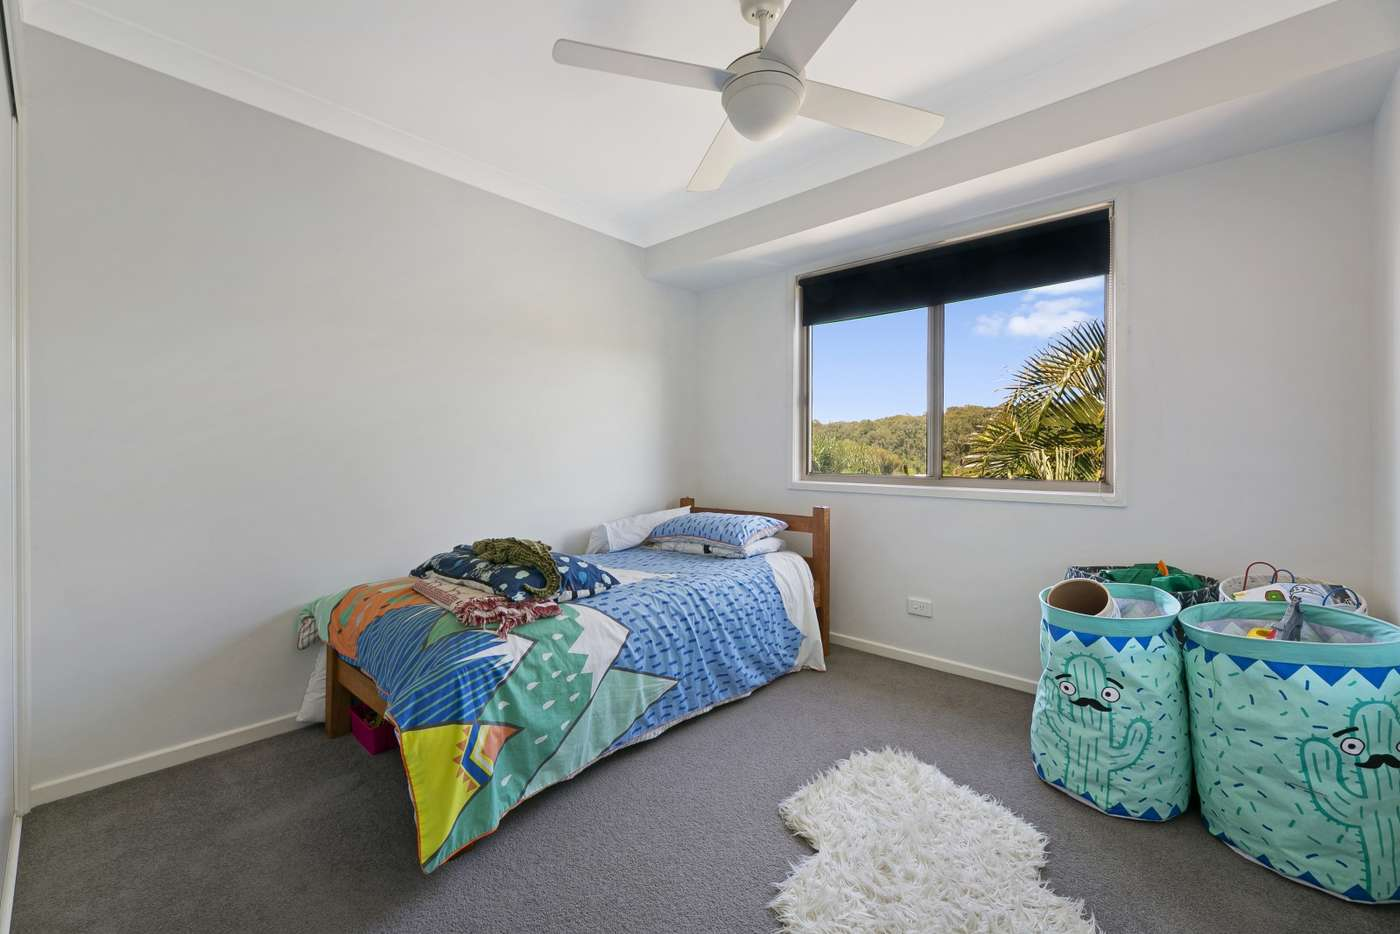 Sixth view of Homely unit listing, 119/6-10 Bourton Road, Merrimac QLD 4226